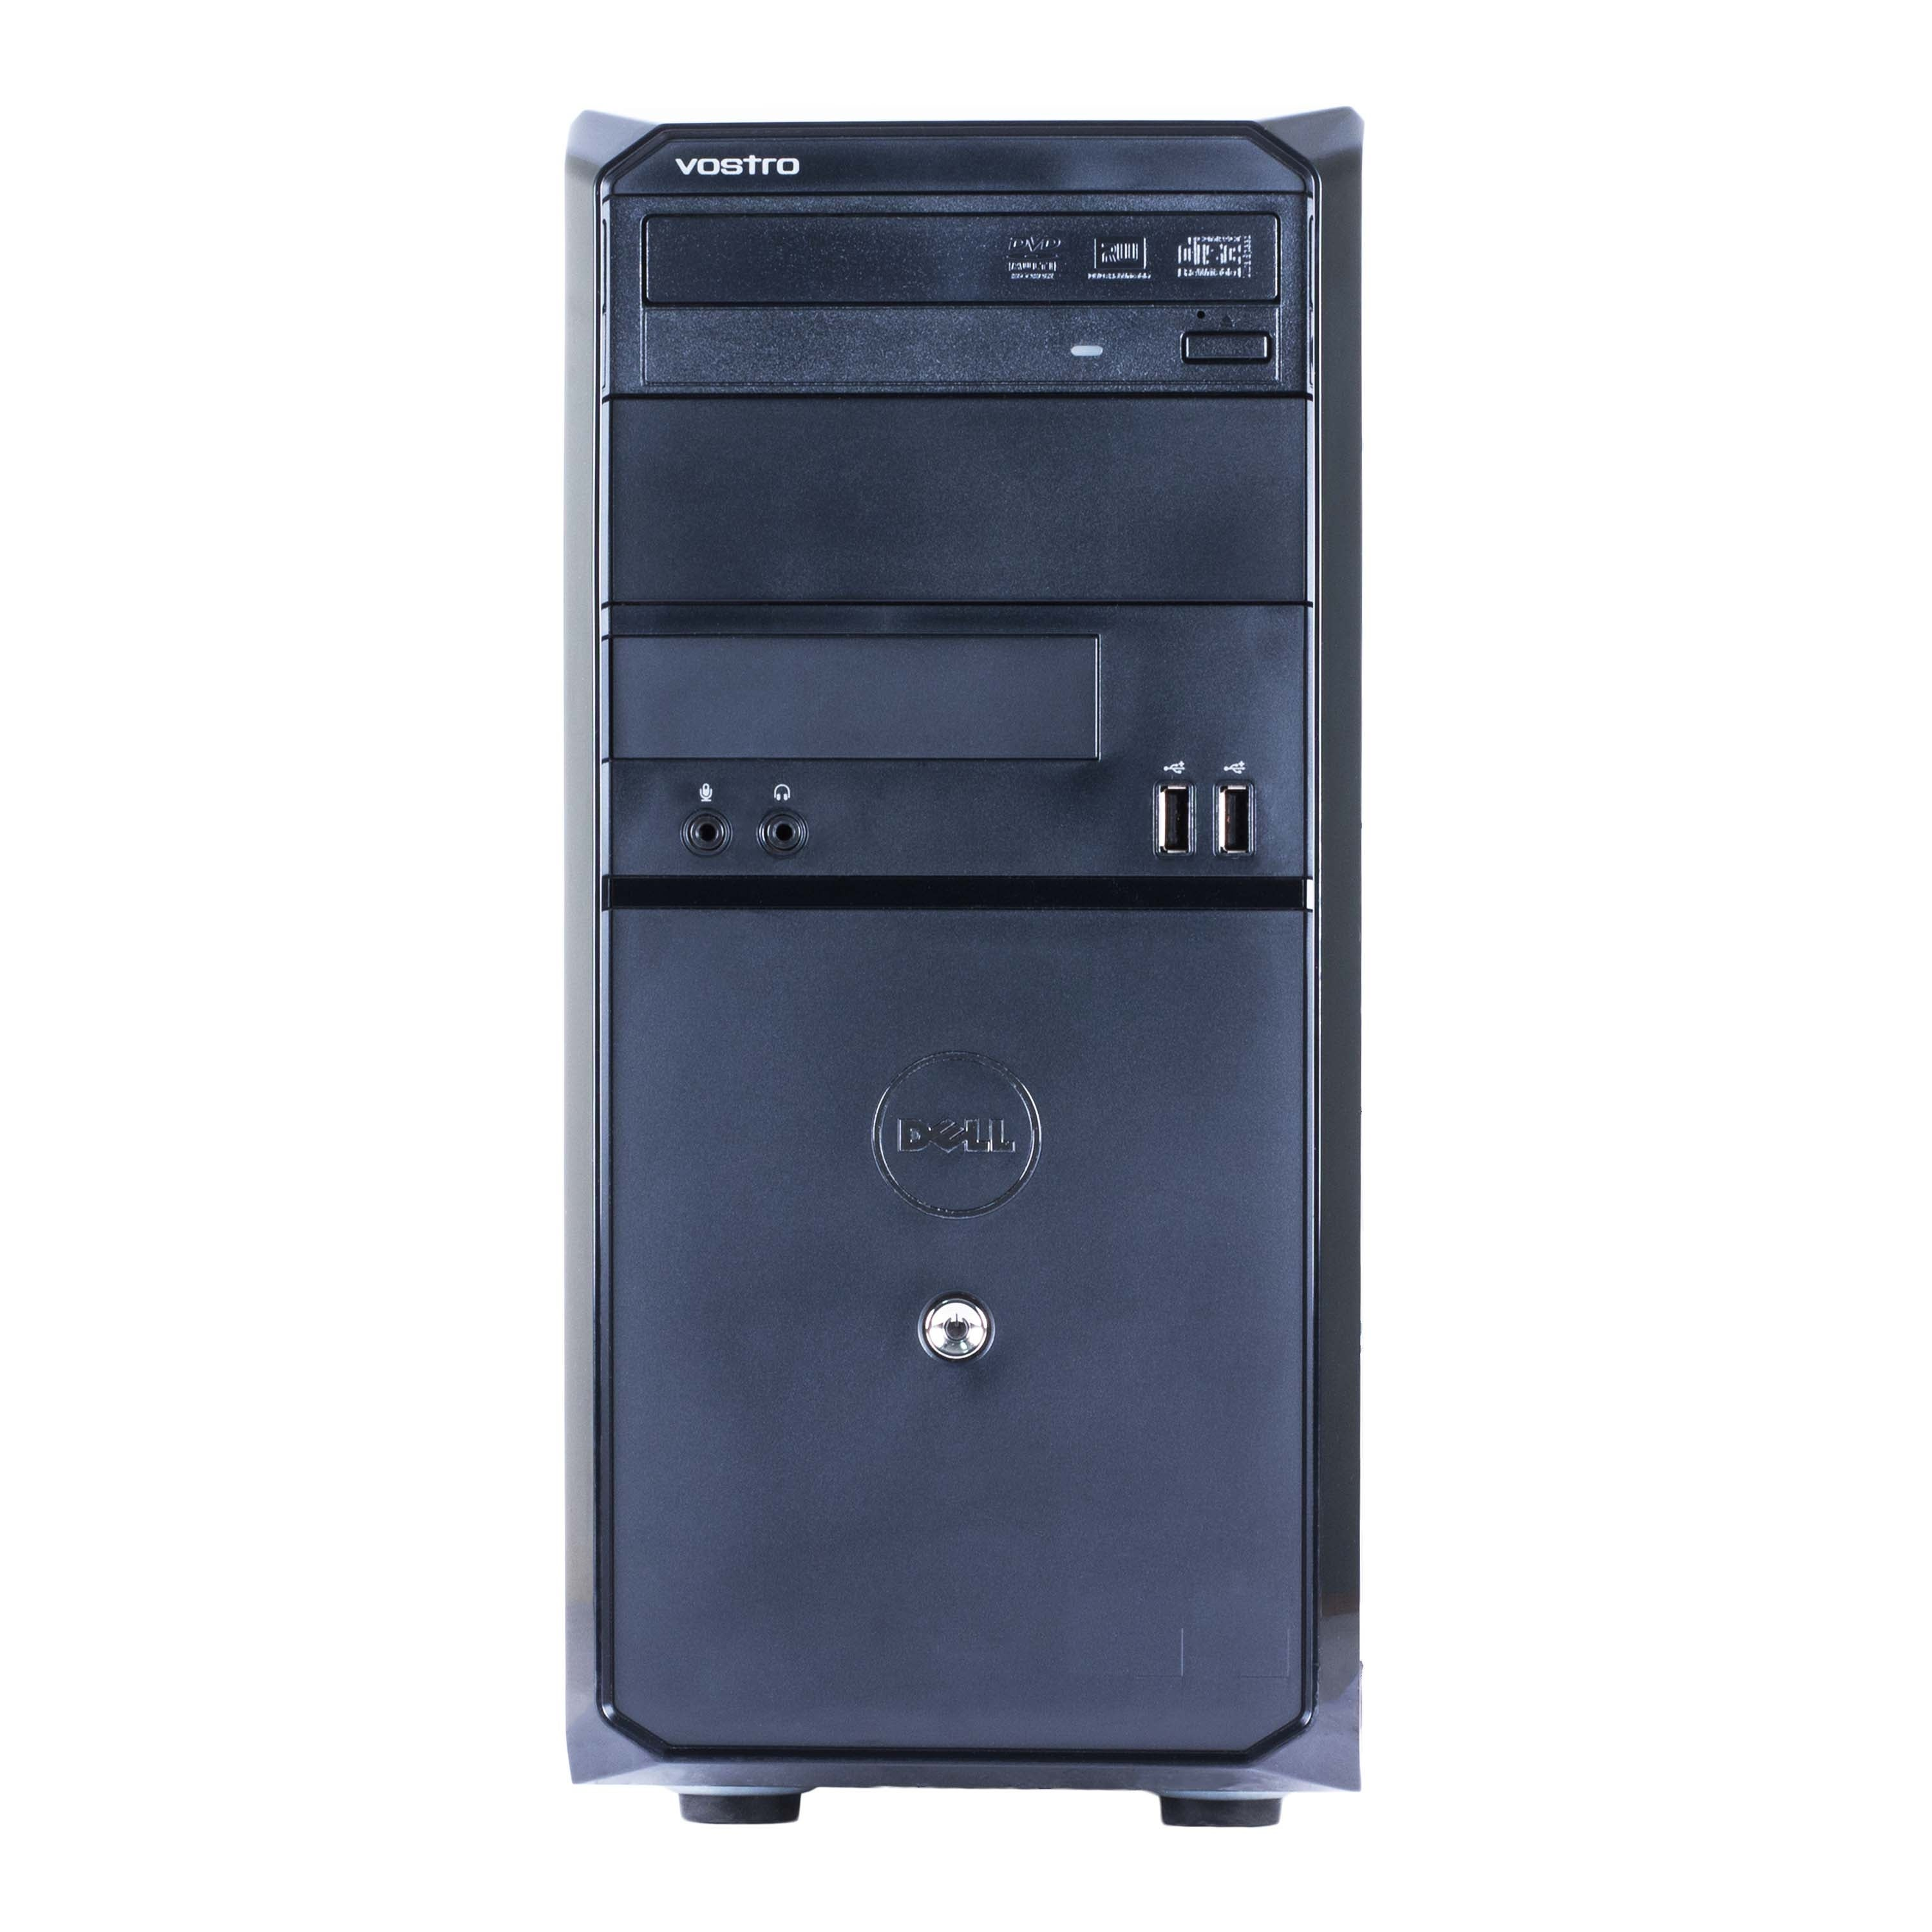 Shop Dell Vostro 230 Computer Tower Intel Core 2 Duo E7500 293g 2gb Advance Speaker Portable Komputer 30 Ddr2 160g Windows 10 Home 1 Year Warranty Refurbished Black Free Shipping Today